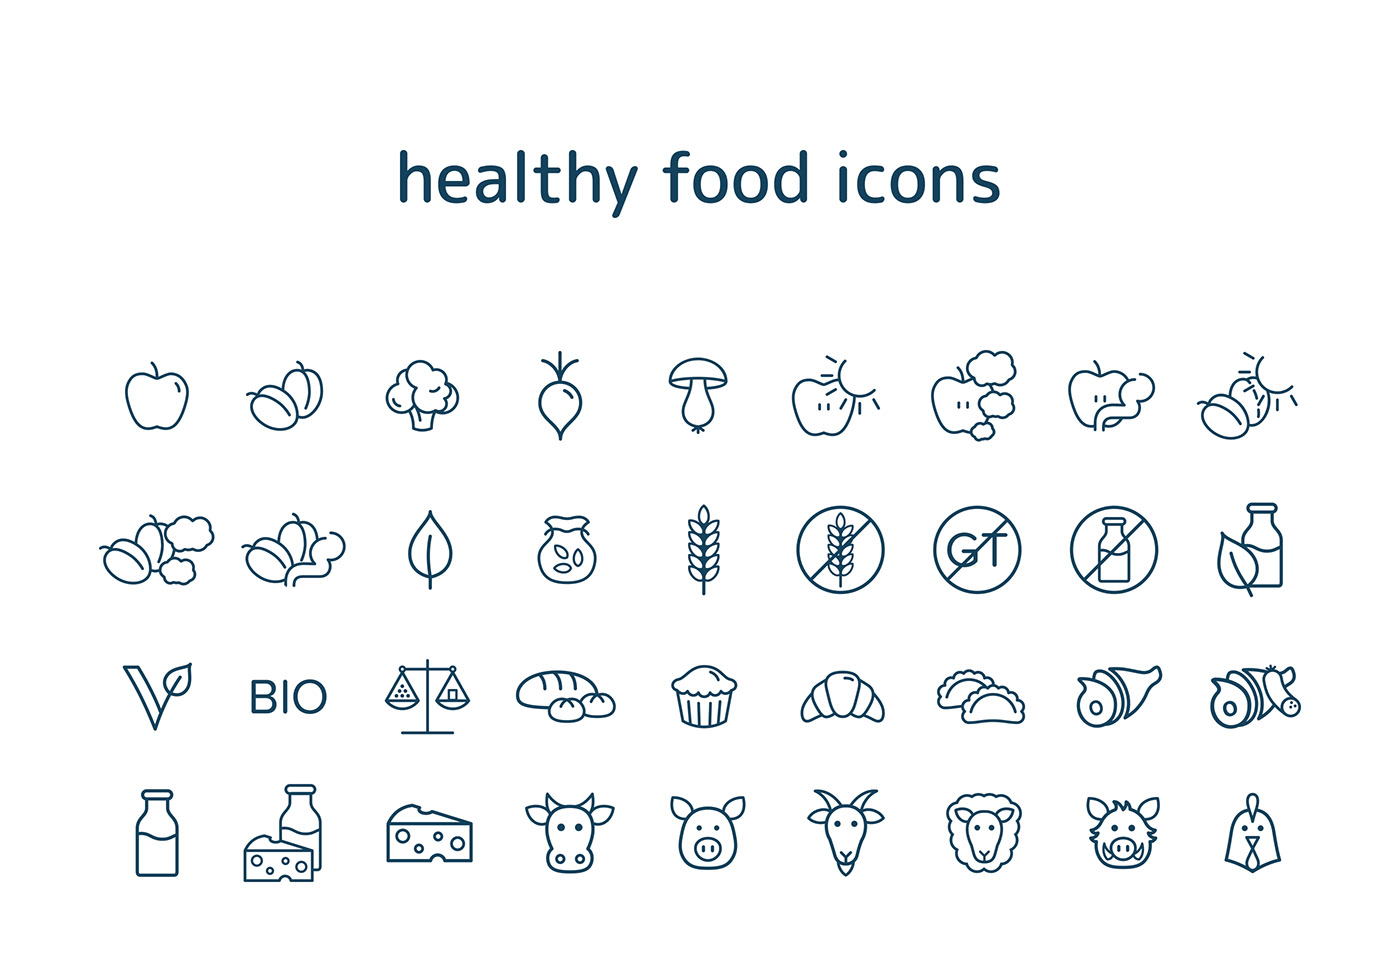 free download icon free icon Icon icons graphic design  graphic free set healthy Food